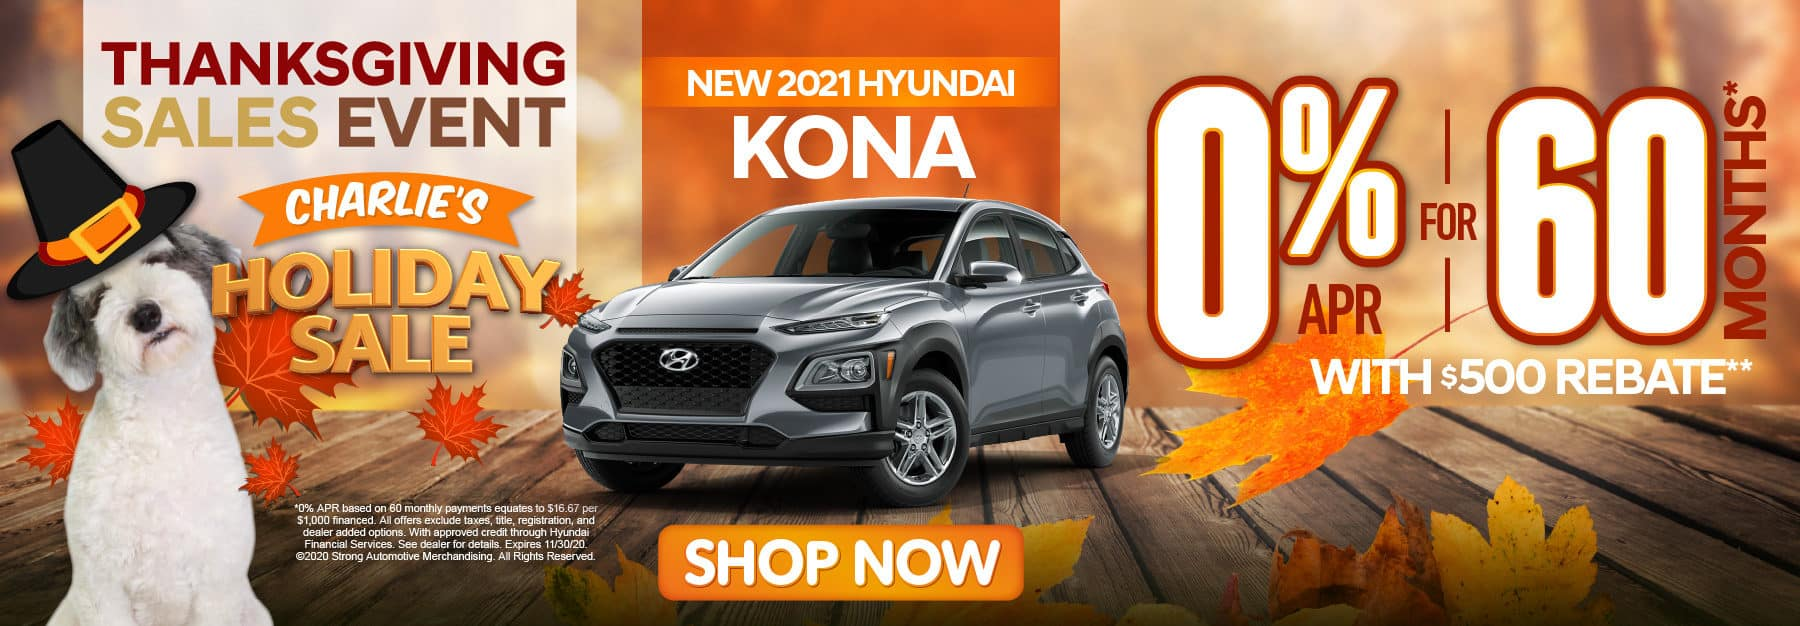 2021 Hyundai Kona 0% APR for 60 months - click here to view inventory